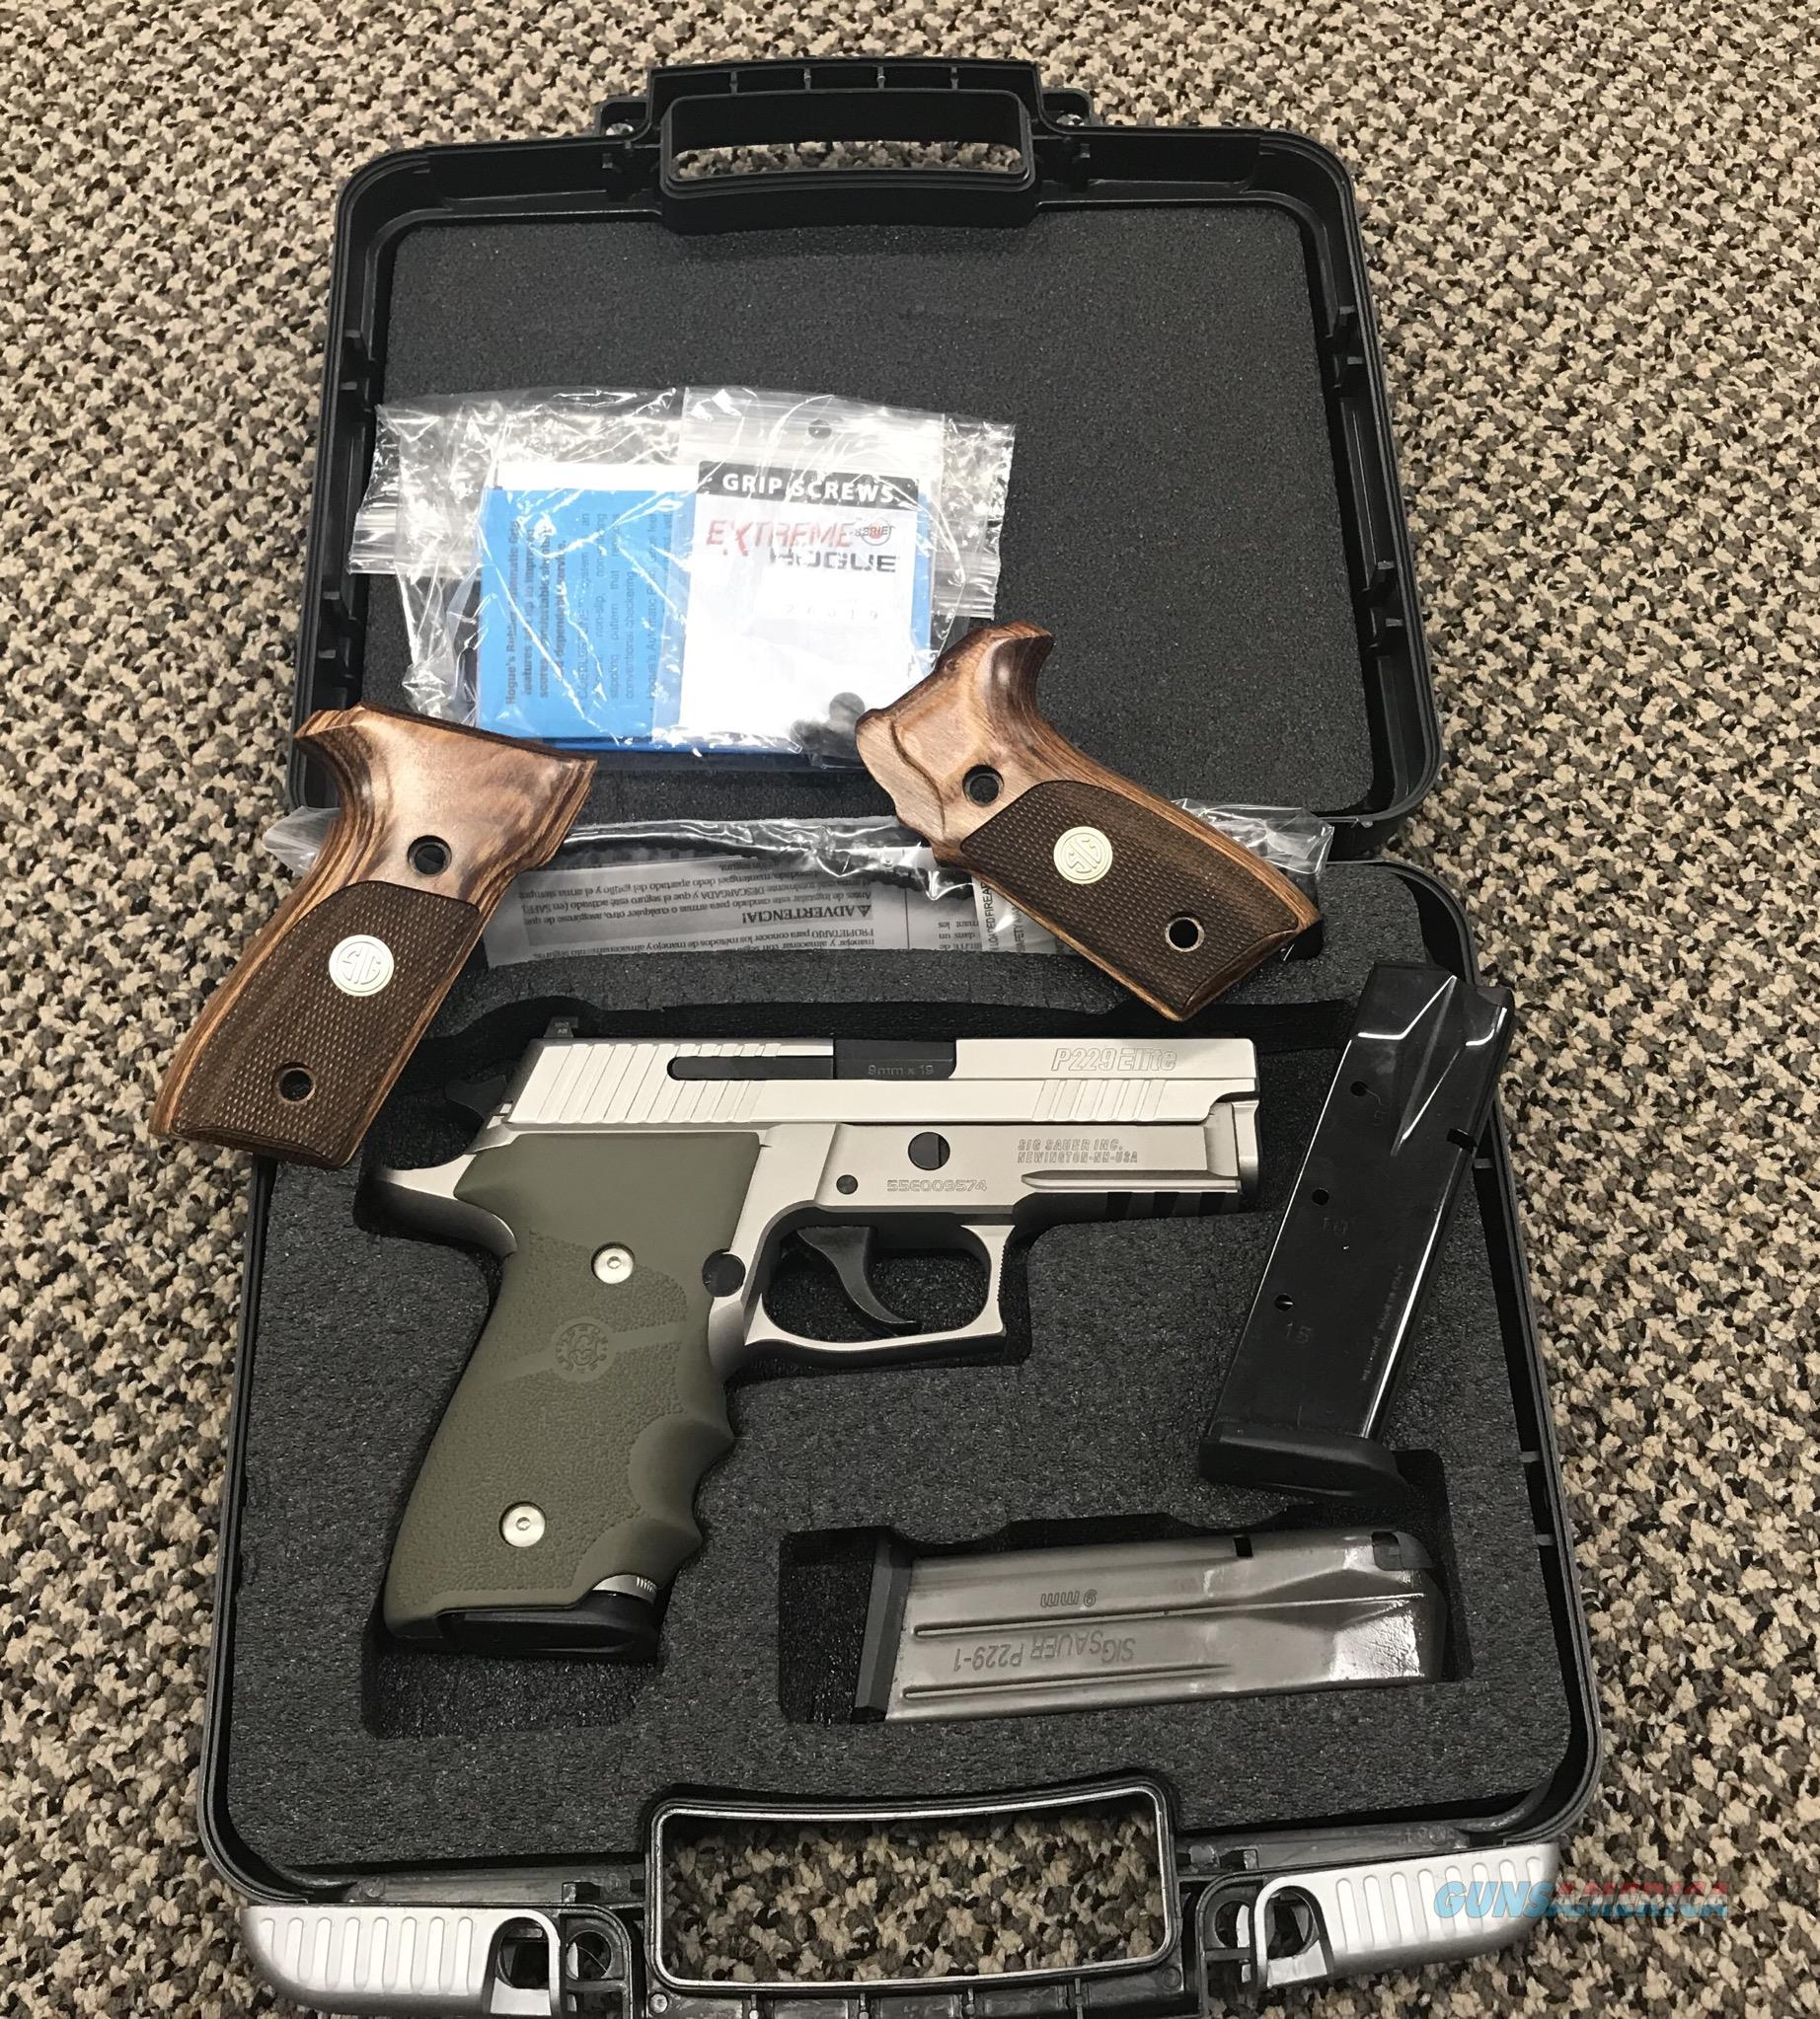 SIG SAUER P229 ELITE 9MM STAINLESS 3.9 INCH BBL  Guns > Pistols > Sig - Sauer/Sigarms Pistols > P229